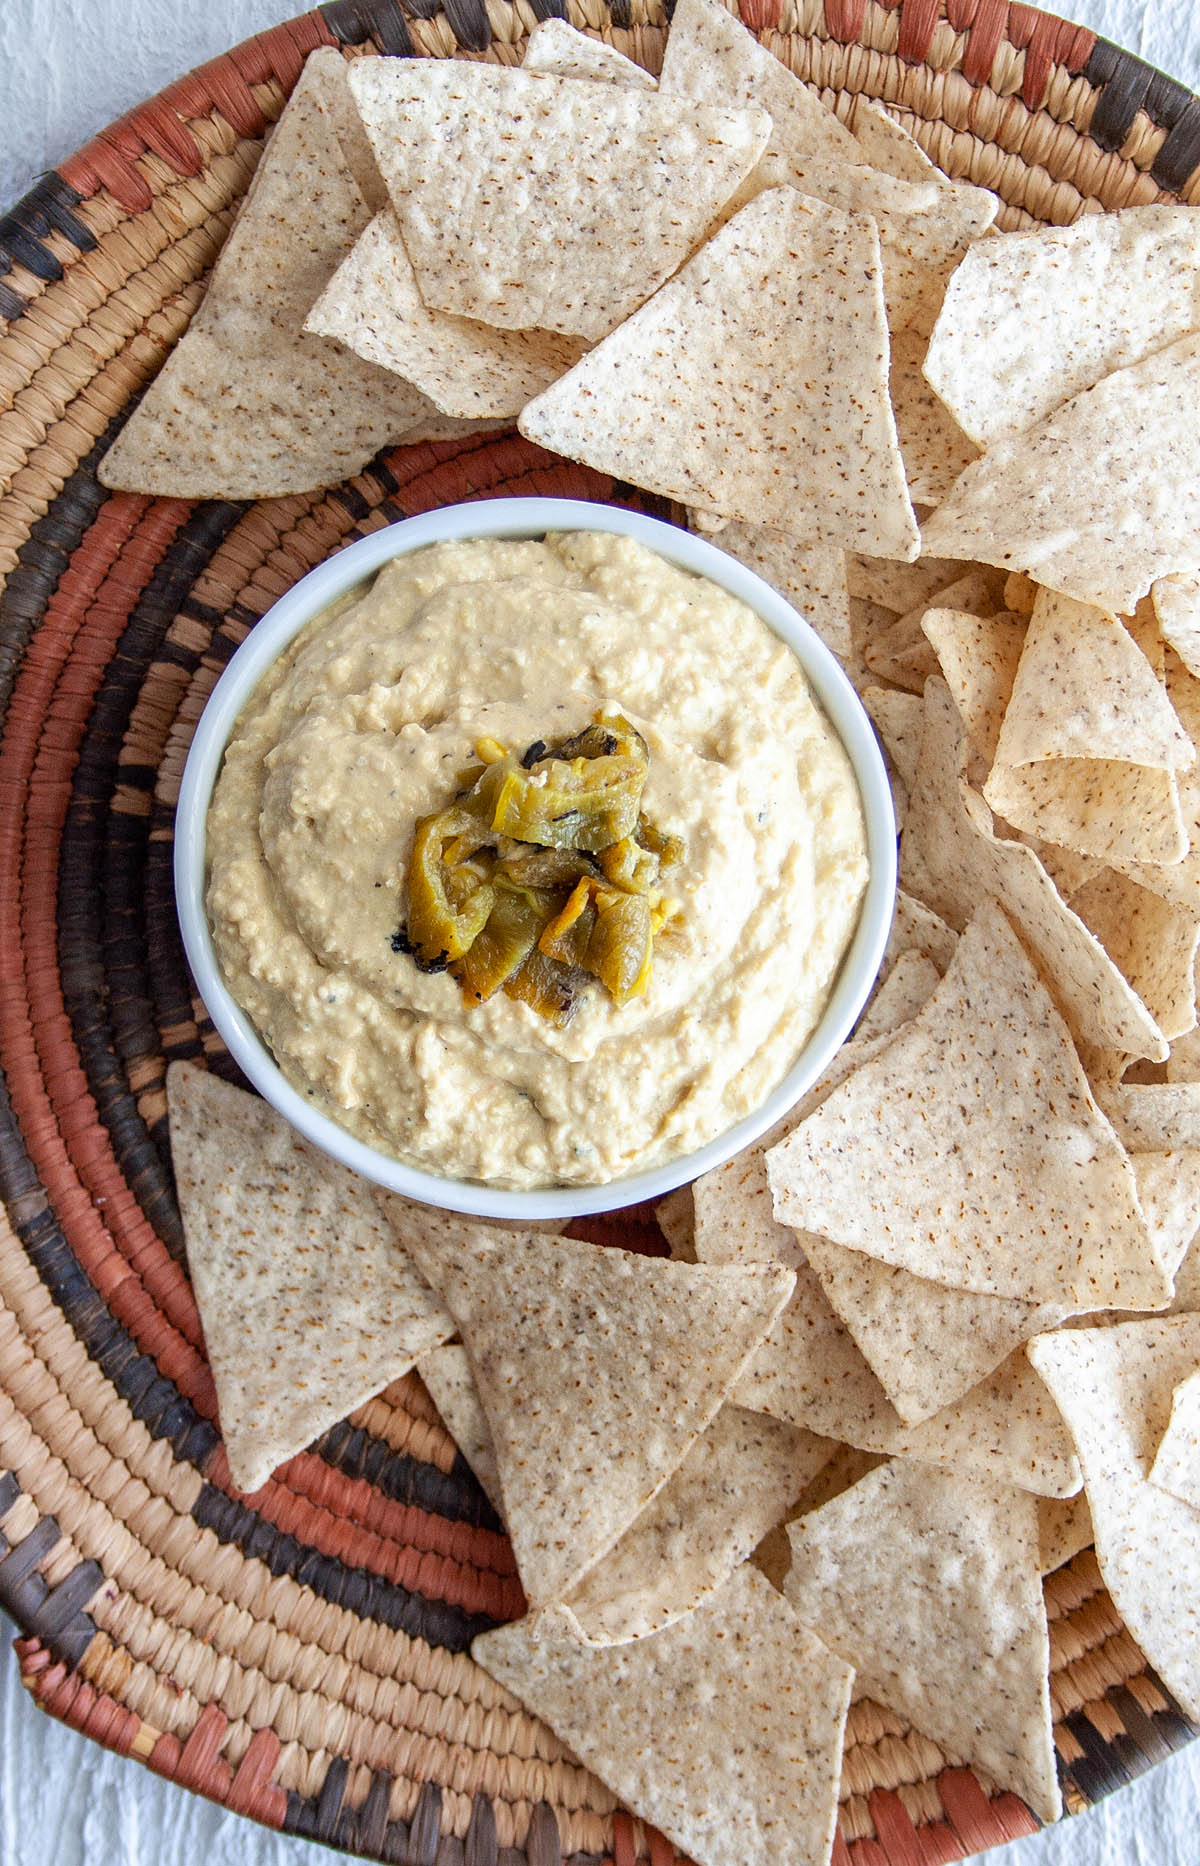 Roasted Hatch Chile Hummus with tortilla chips.